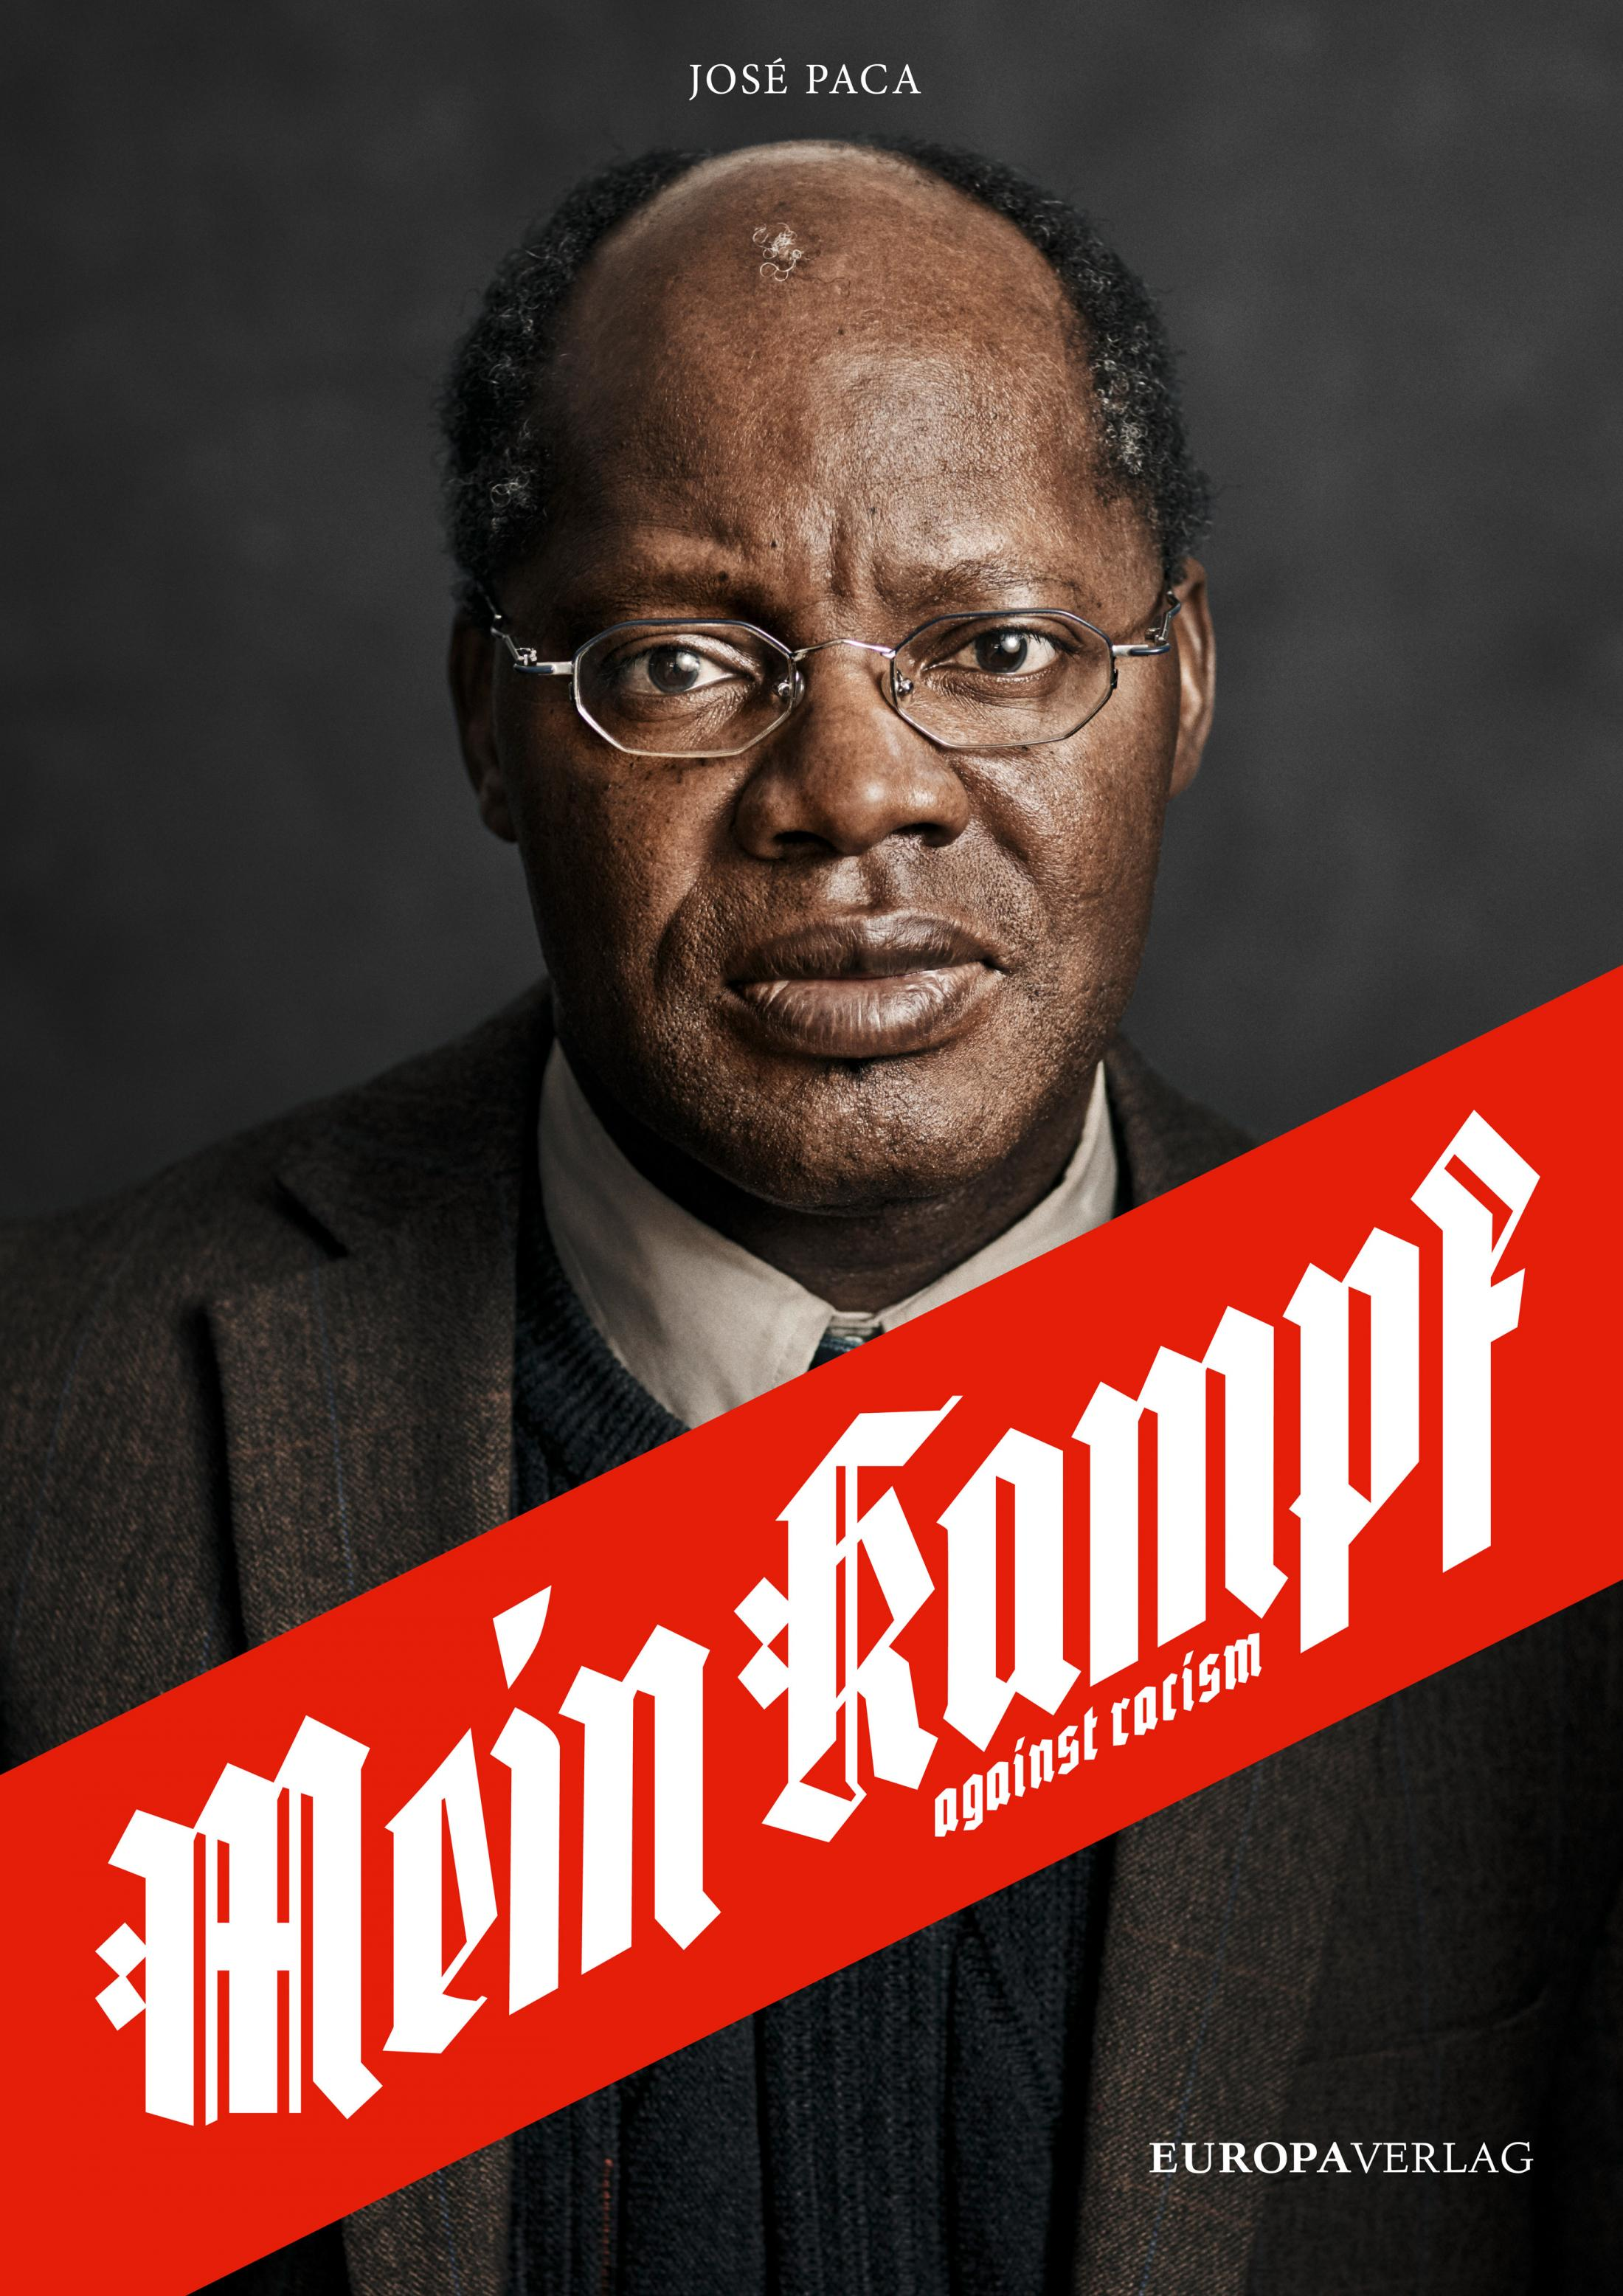 Thumbnail for Mein Kampf – against racism/ Print Ad:  José Paca